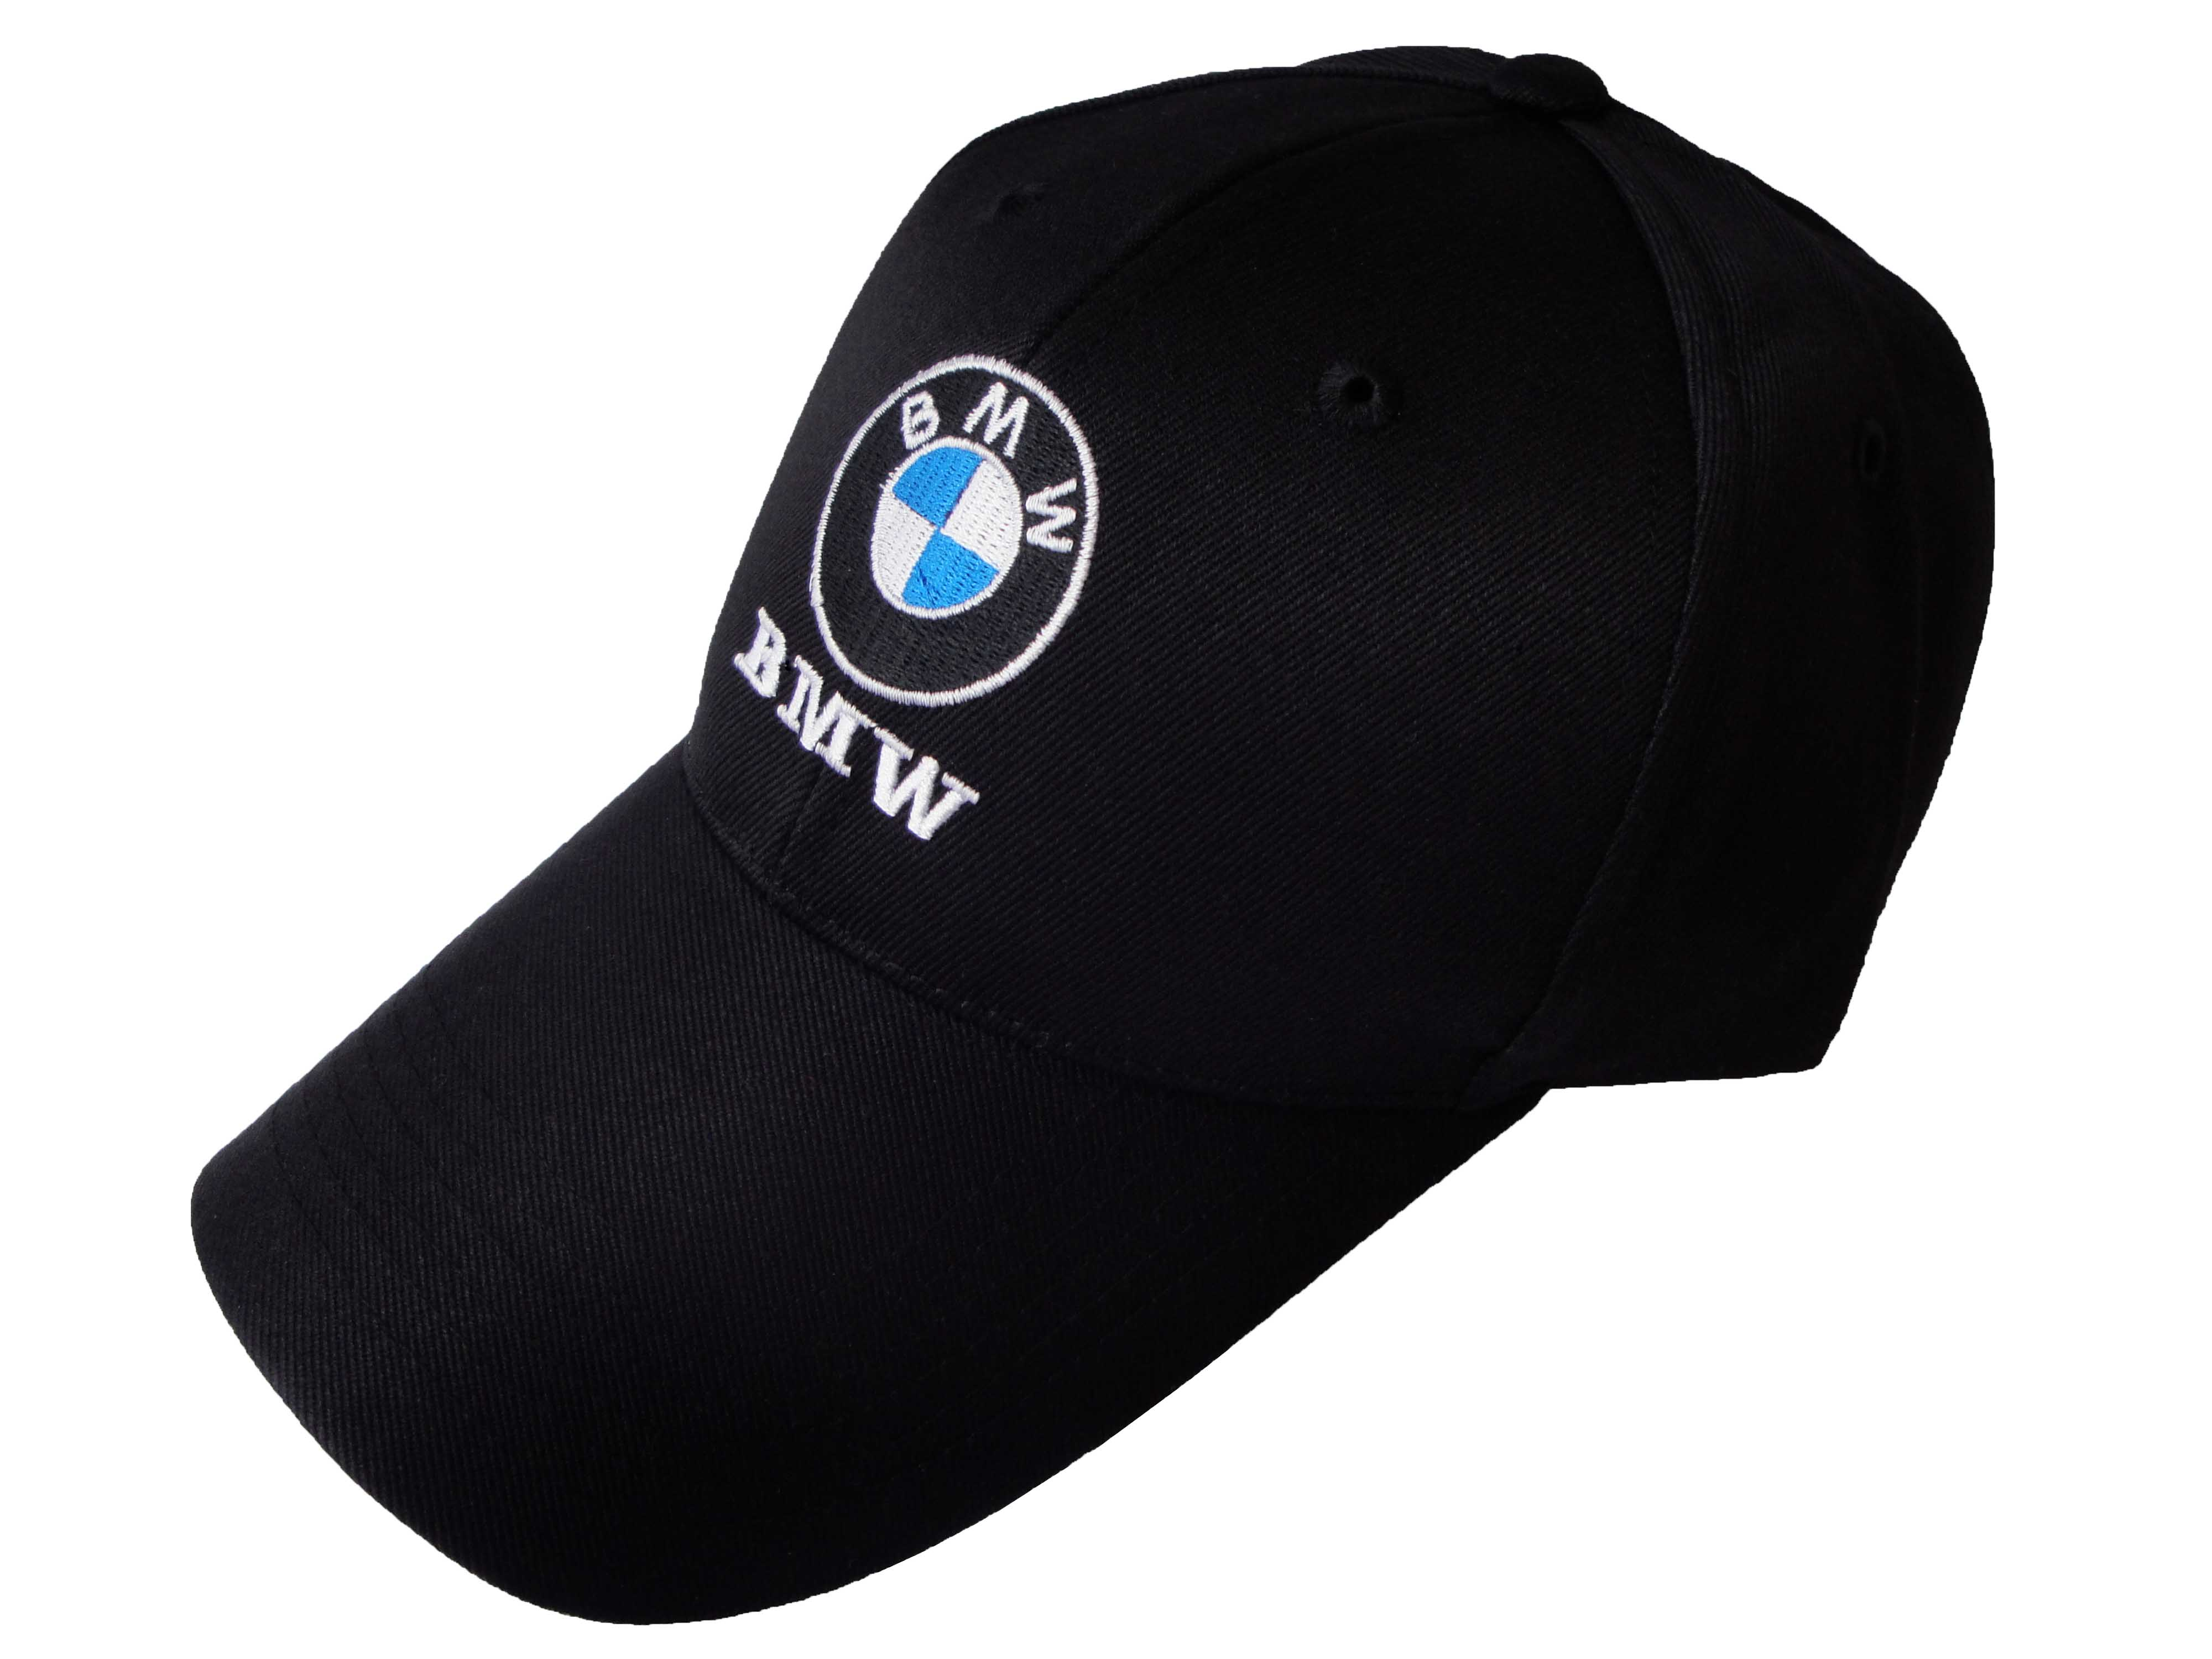 bmw cheap hat on shopping deals guides com peaked line alibaba maneg find sandwich at cap